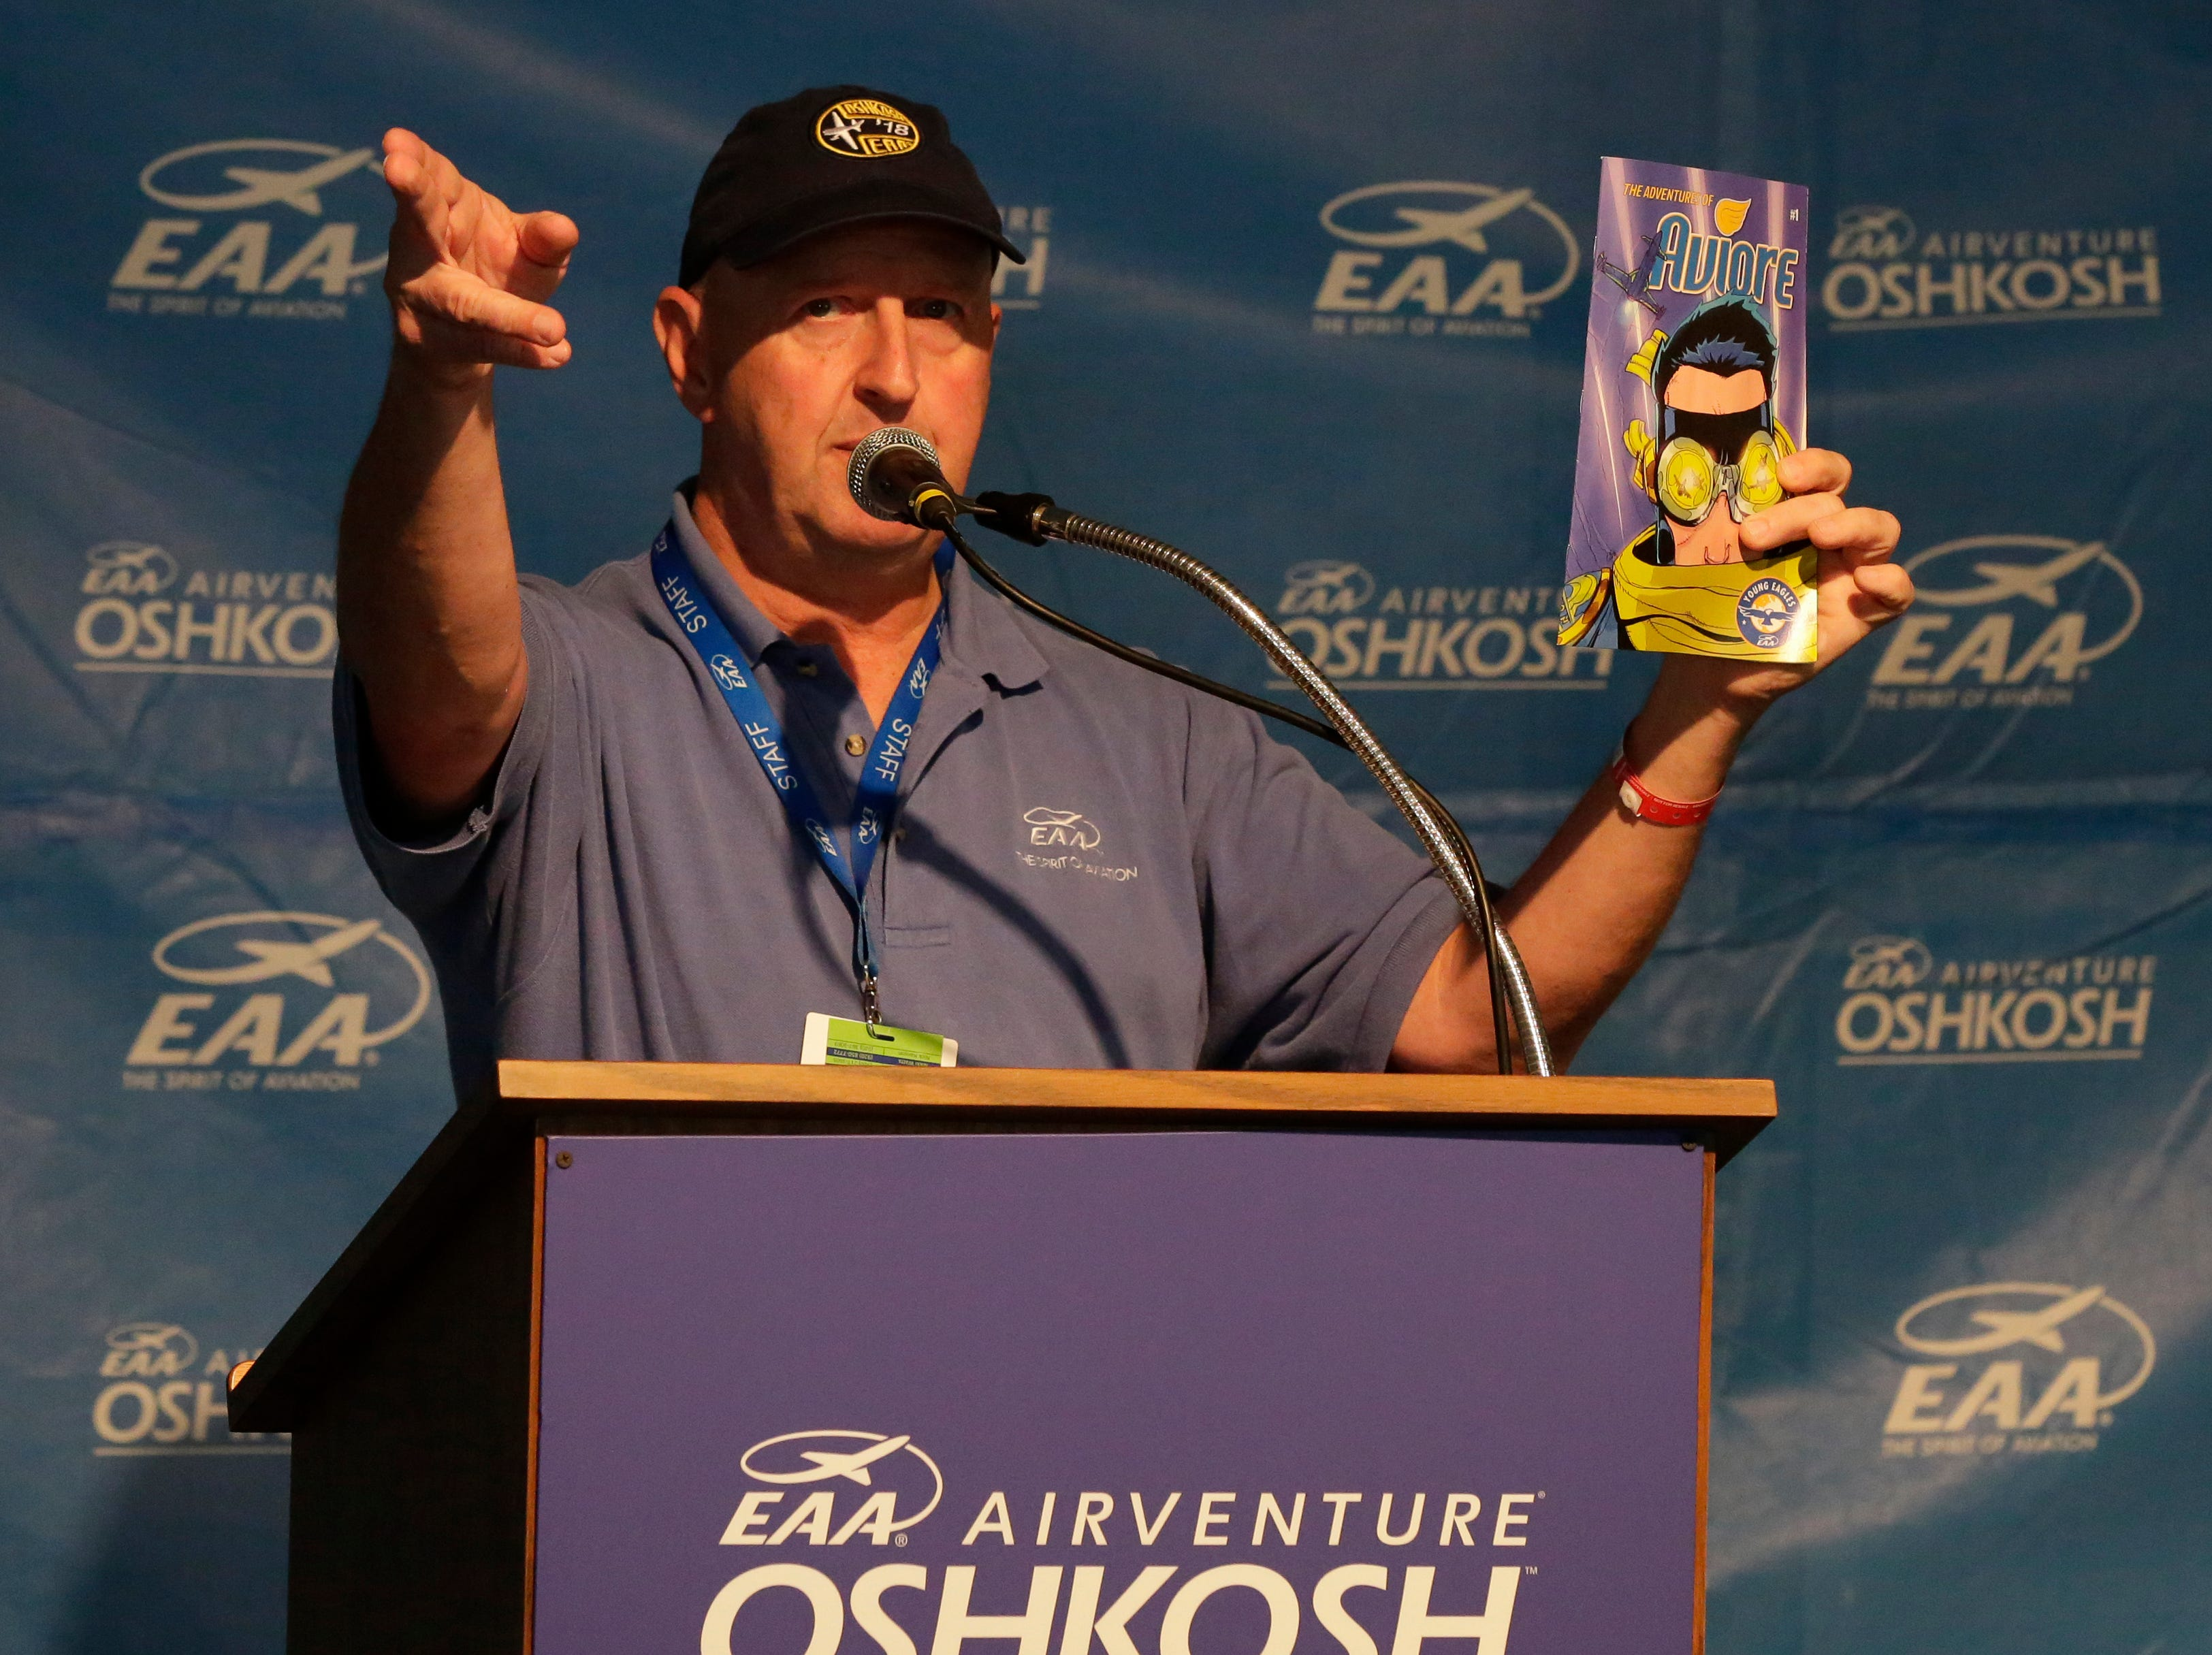 Dick Knapinski, Experimental Aircraft Association Public Relations Director hold a morning briefing and shows off the latest from comic book writer Stan Lee the new super hero of EAA is Aviore.  The first day of AirVenture 2018 opened on July 23, 2018.  Thousands of people will pass through the gates of AirVenture. Joe Sienkiewicz/USA Today NETWORK-Wisconsin